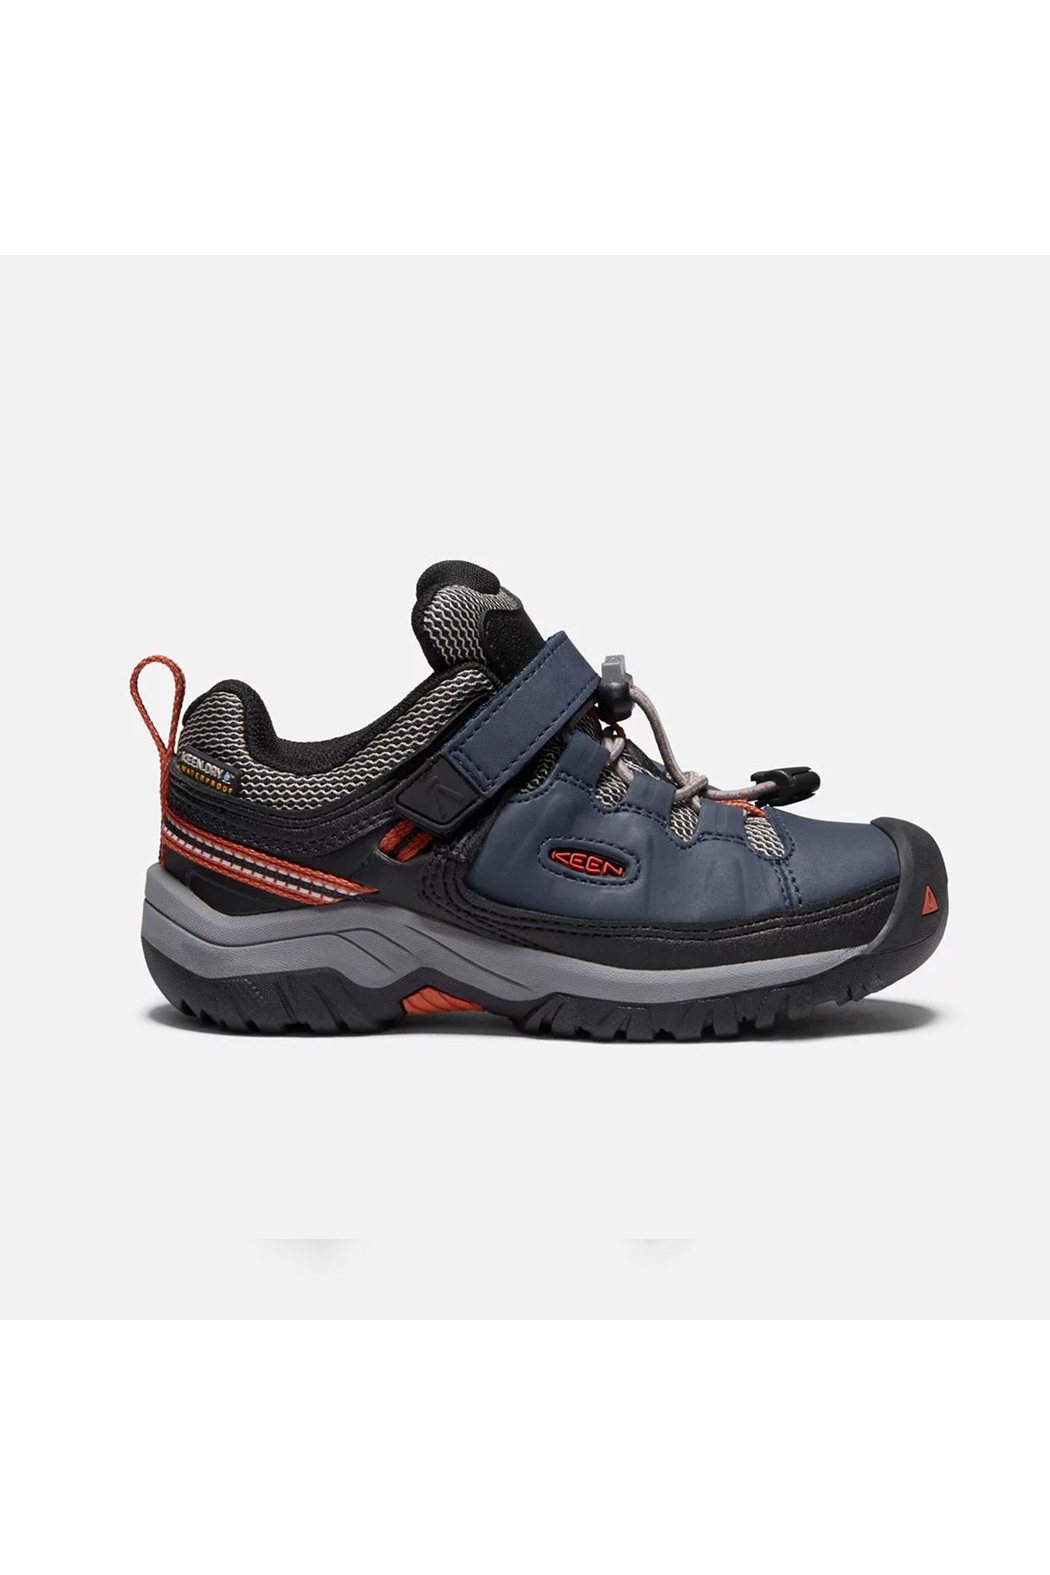 Keen Targhee Low Waterproof Child - Front Cropped Image